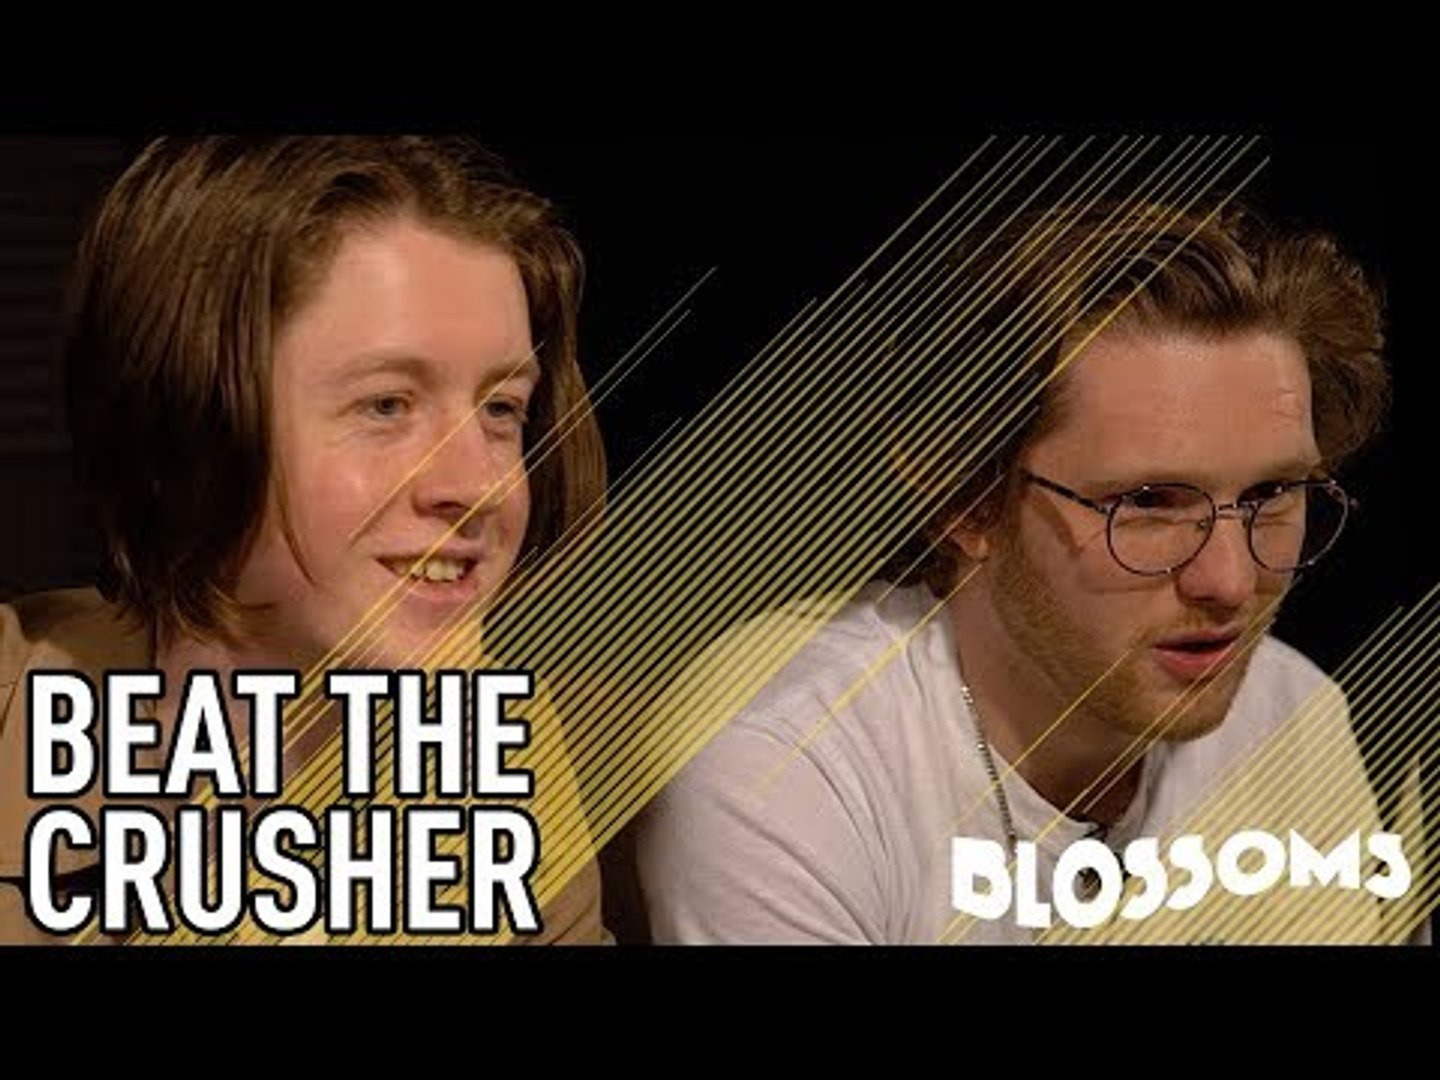 GREATEST EVER PREMIER LEAGUE SIDE! | BLOSSOMS BEAT THE CRUSHER | SPORF